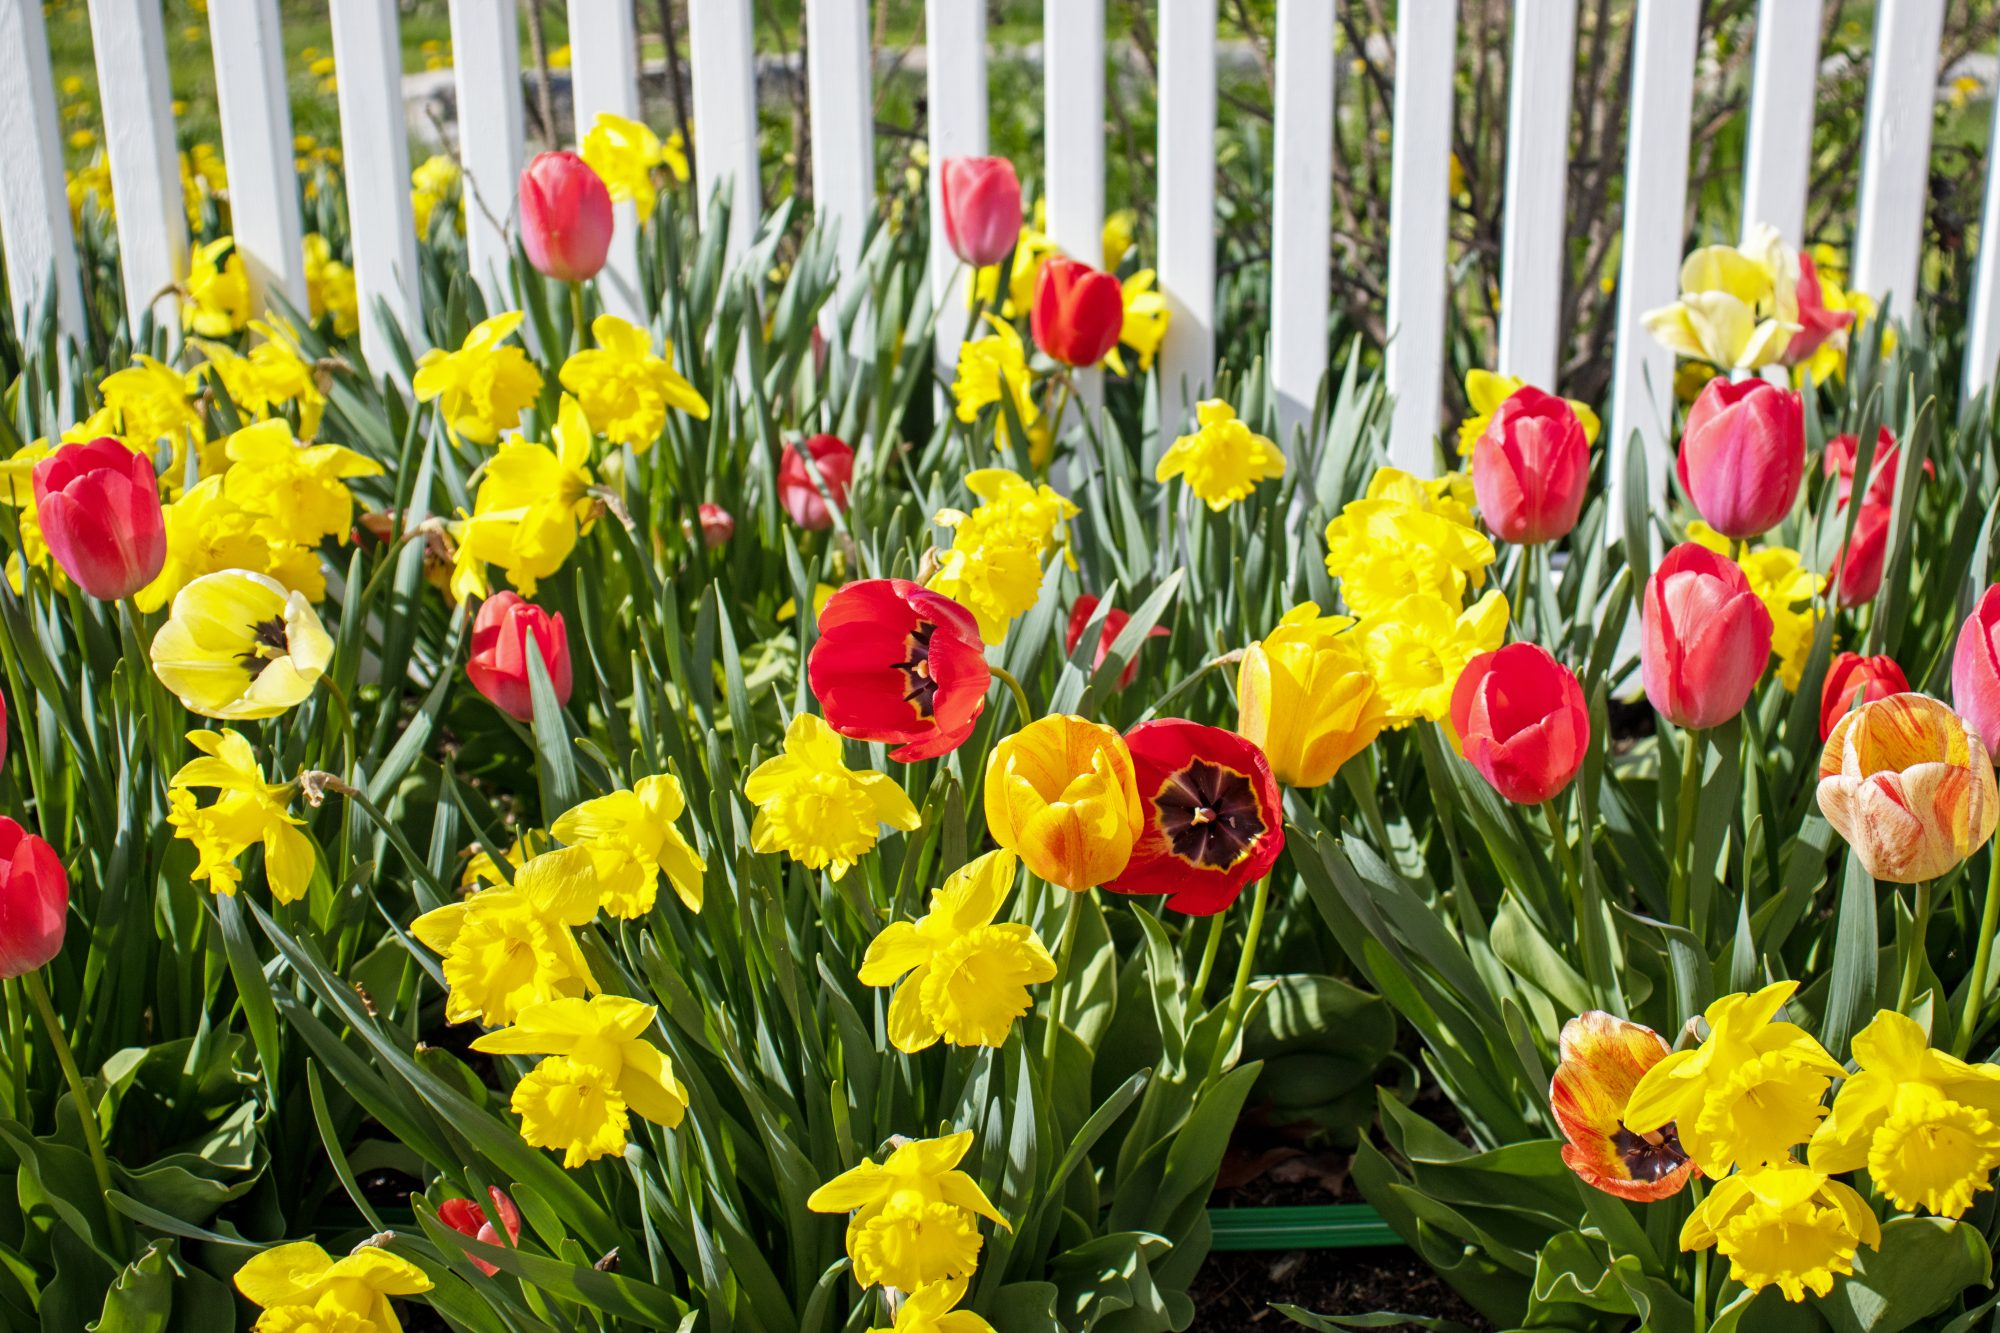 Tulip flowers and daffodils along white picket fence